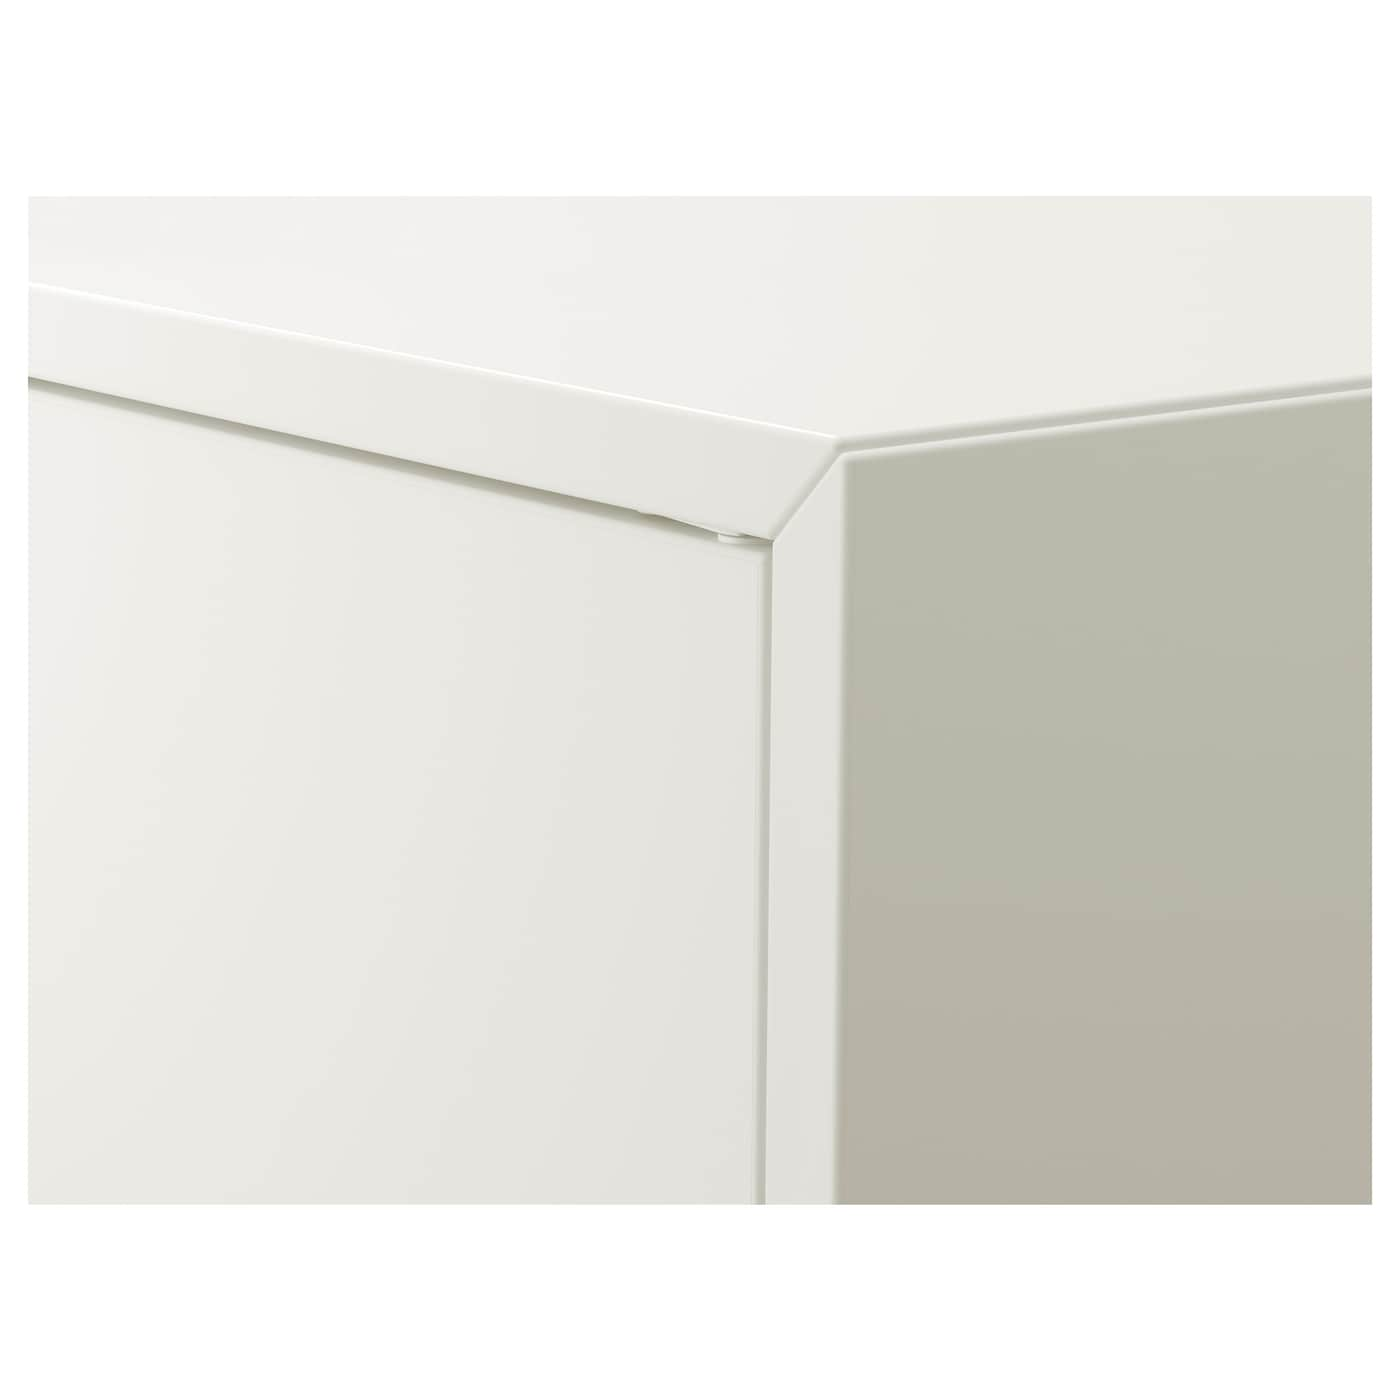 """EKET Cabinet with 2 doors and shelf, white, 27 1/2x13 3/4x27 1/2 """""""